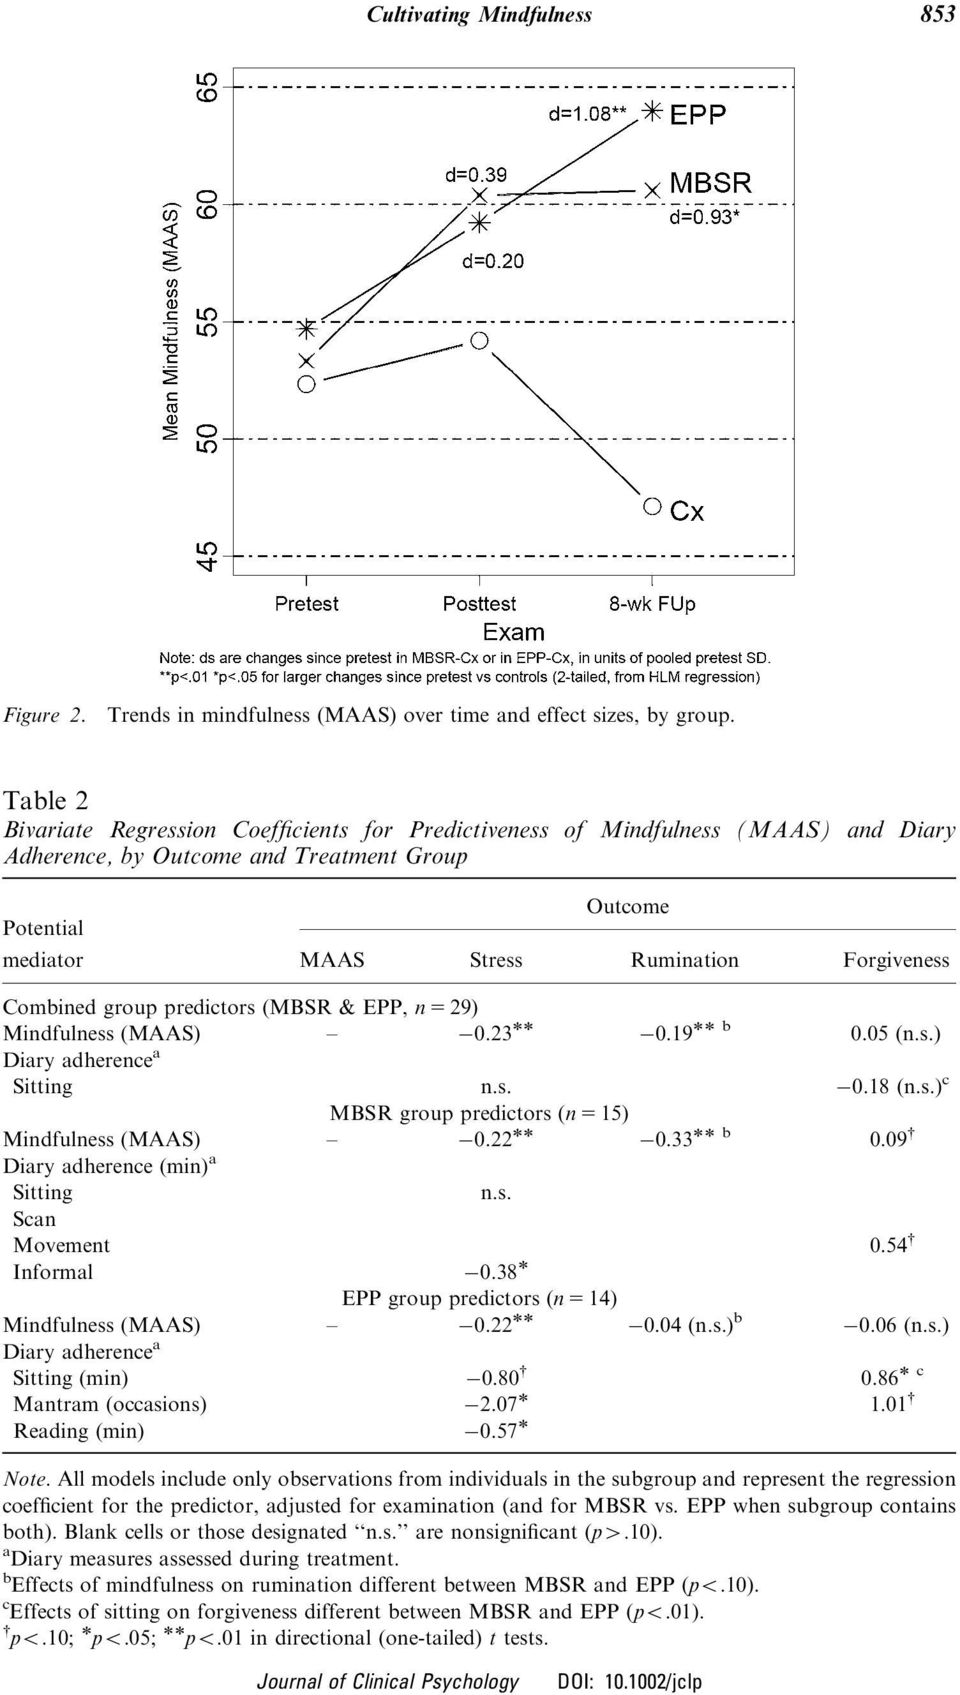 Combined group predictors (MBSR & EPP, n 5 29) Mindfulness (MAAS) 0.23 0.19 b 0.05 (n.s.) Diary adherence a Sitting n.s. 0.18 (n.s.) c MBSR group predictors (n 5 15) Mindfulness (MAAS) 0.22 0.33 b 0.